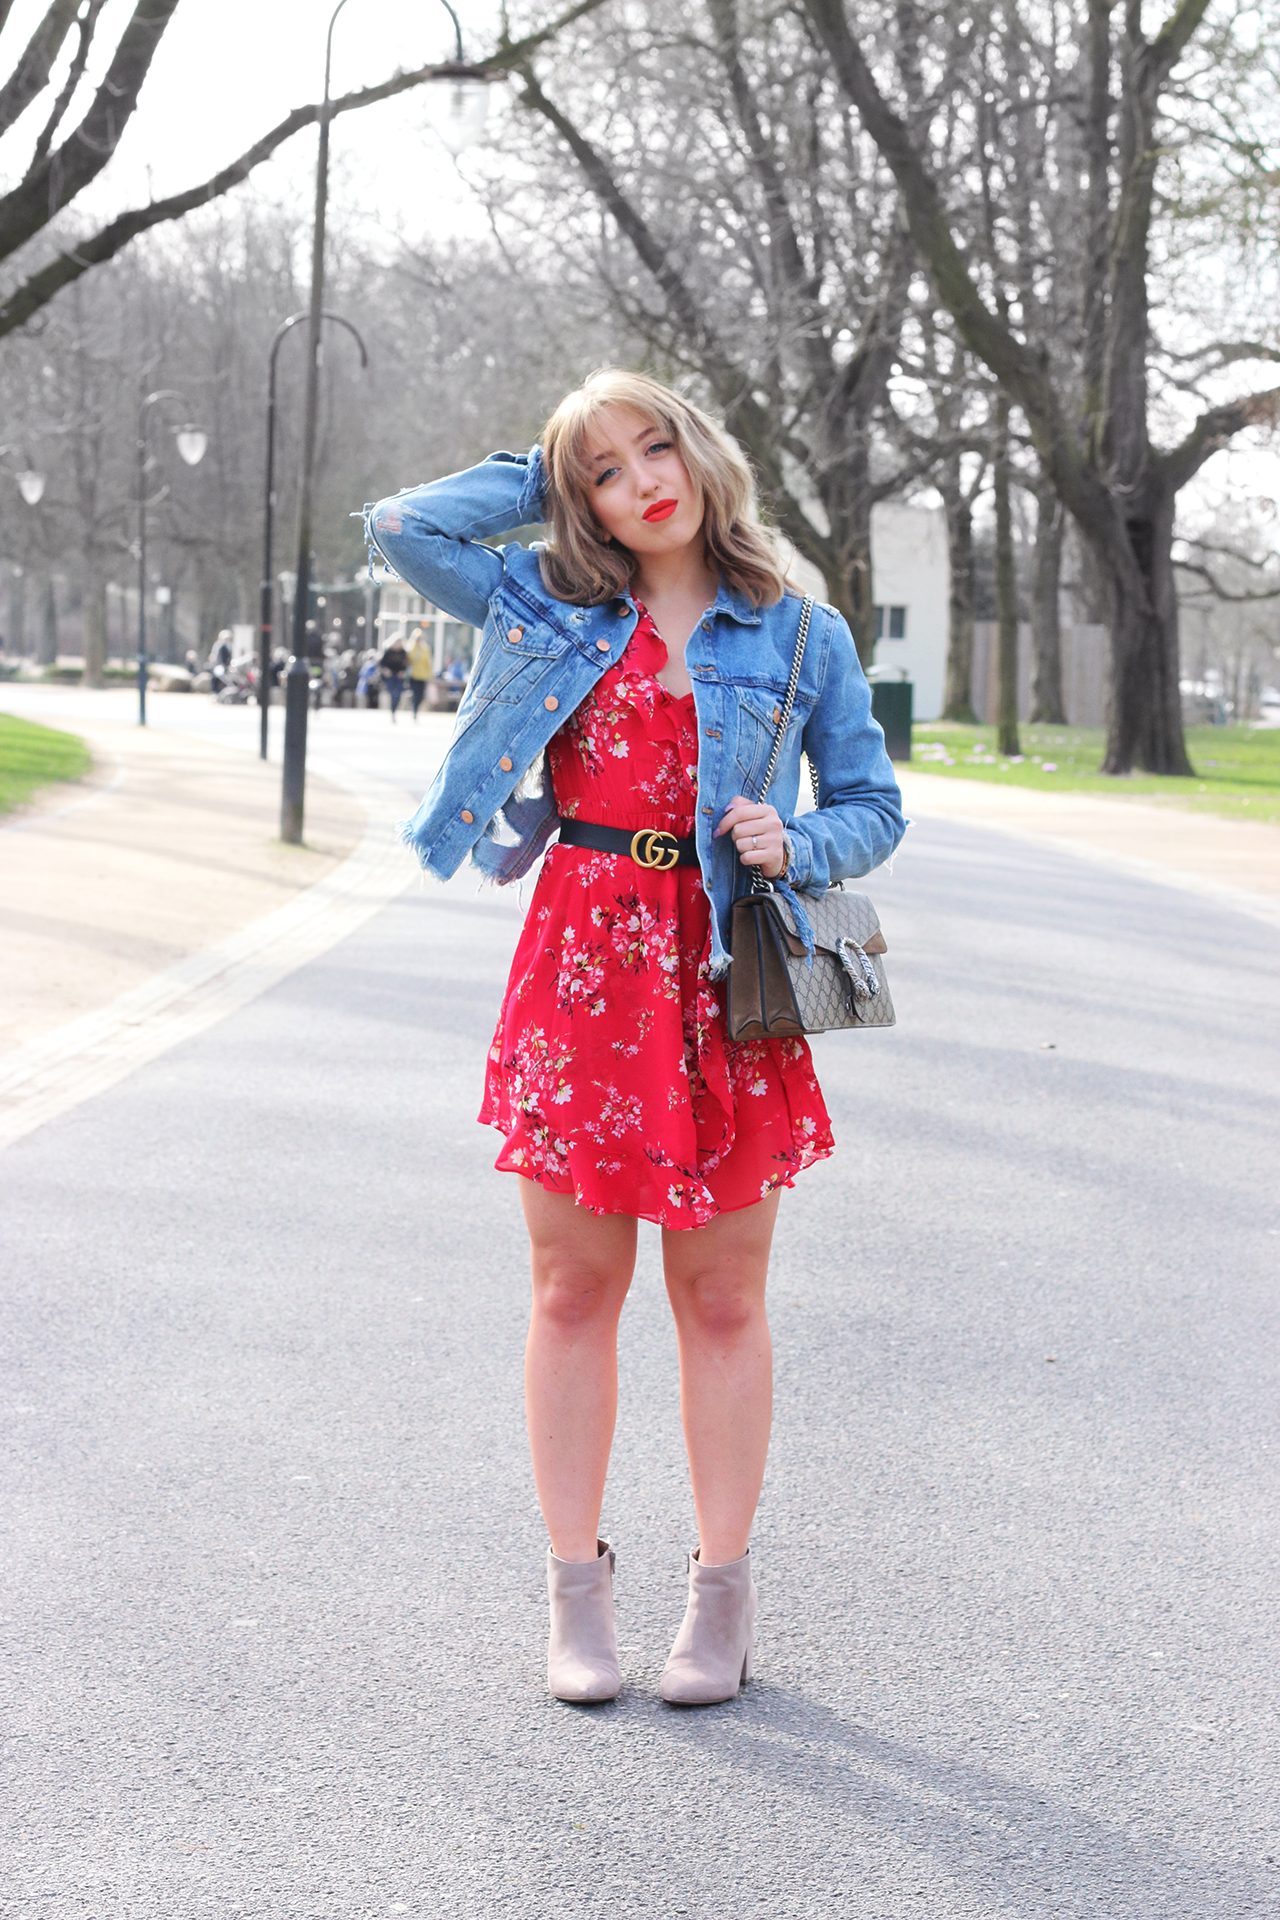 FASHION GUIDE | How To Style Floral Prints For Spring